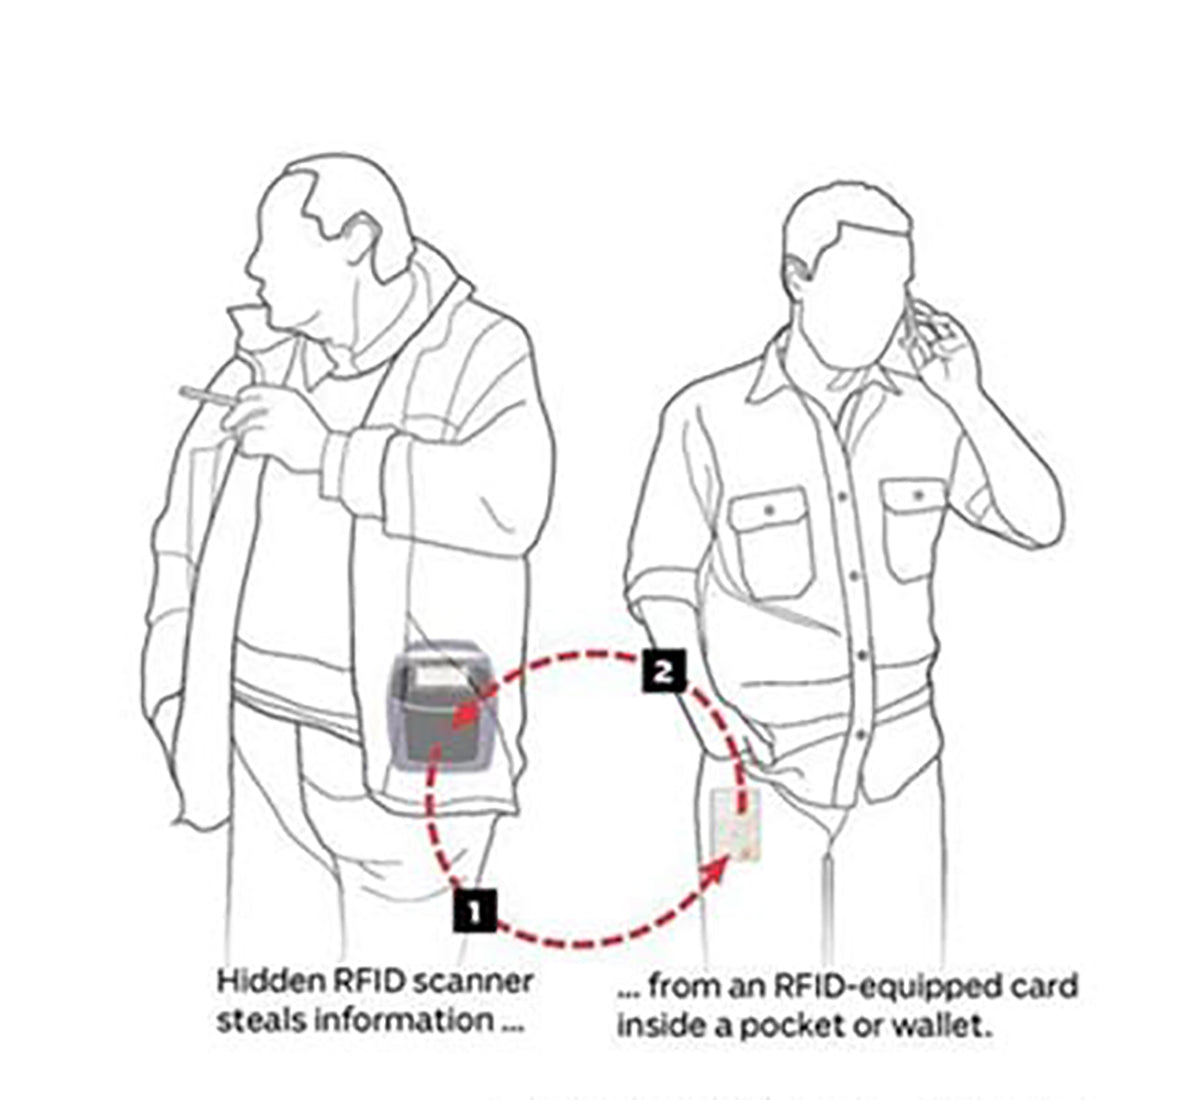 What Is Electronic Pickpocketing and How Do You Prevent It?